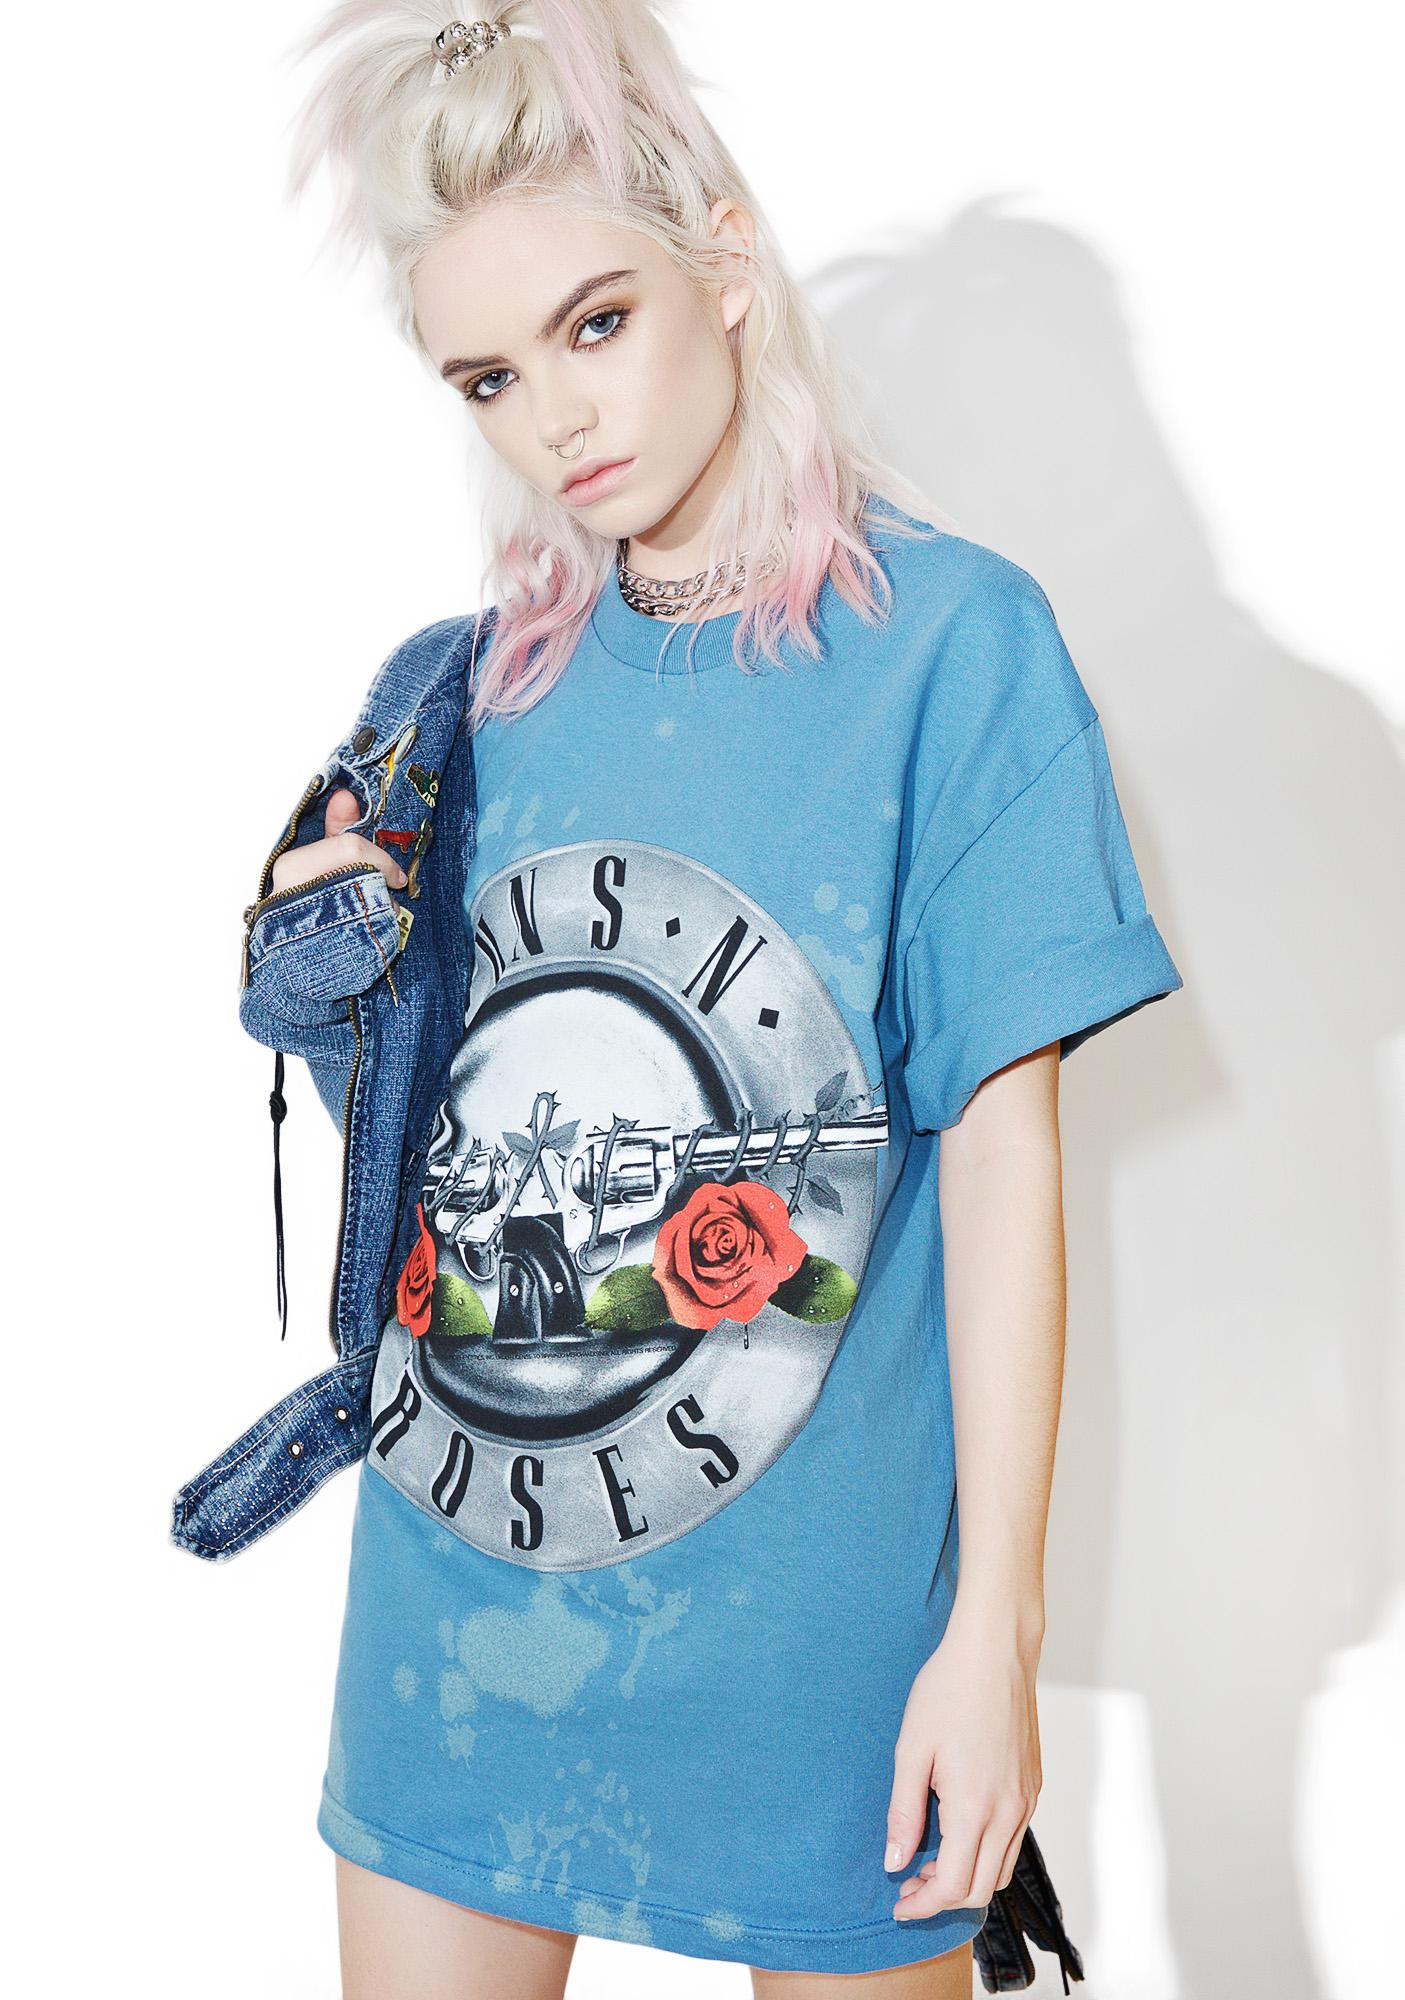 Appetite Fer Destruction Tee